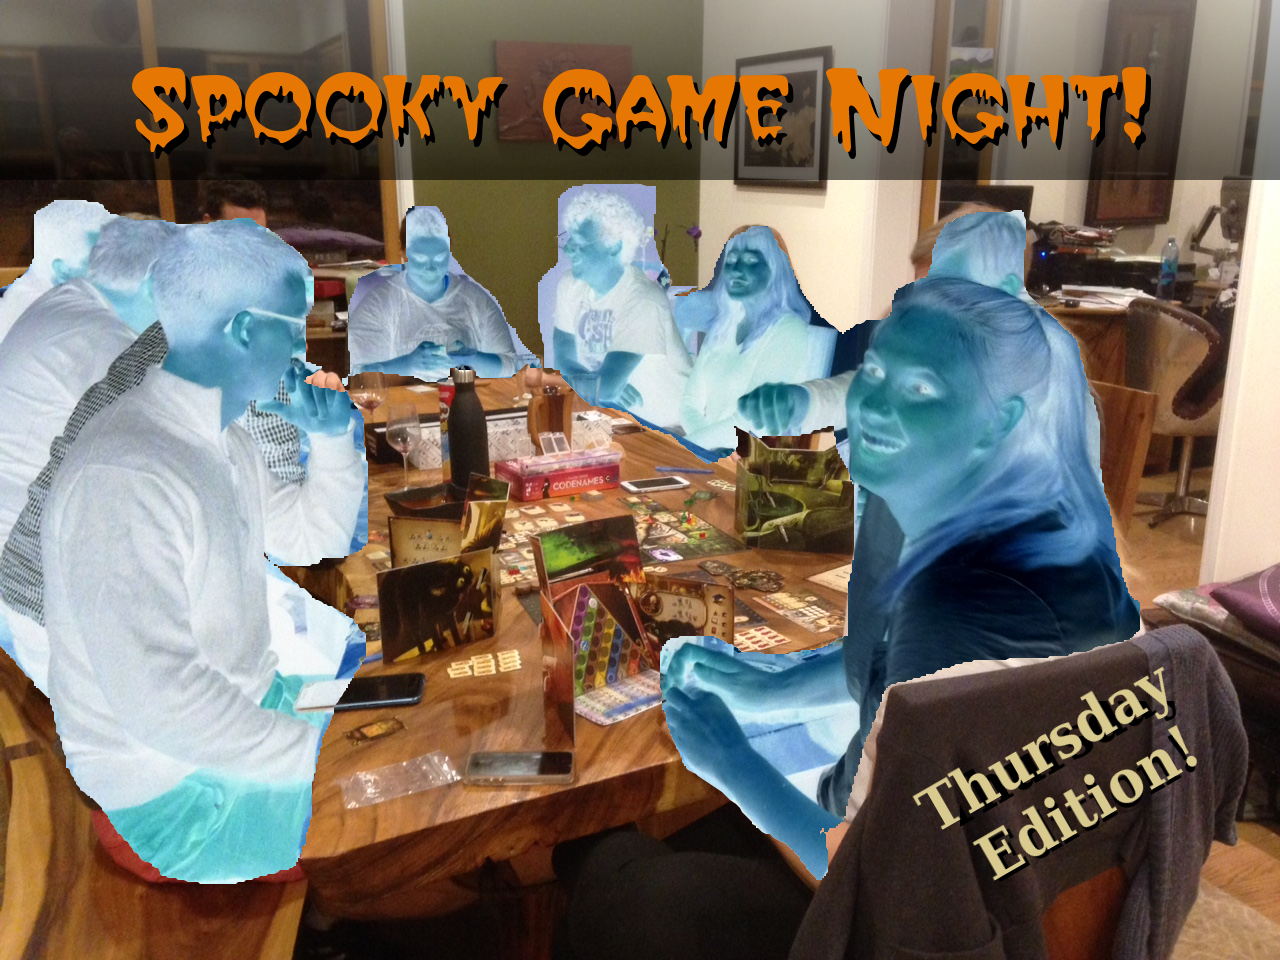 spooky_game_night2.png